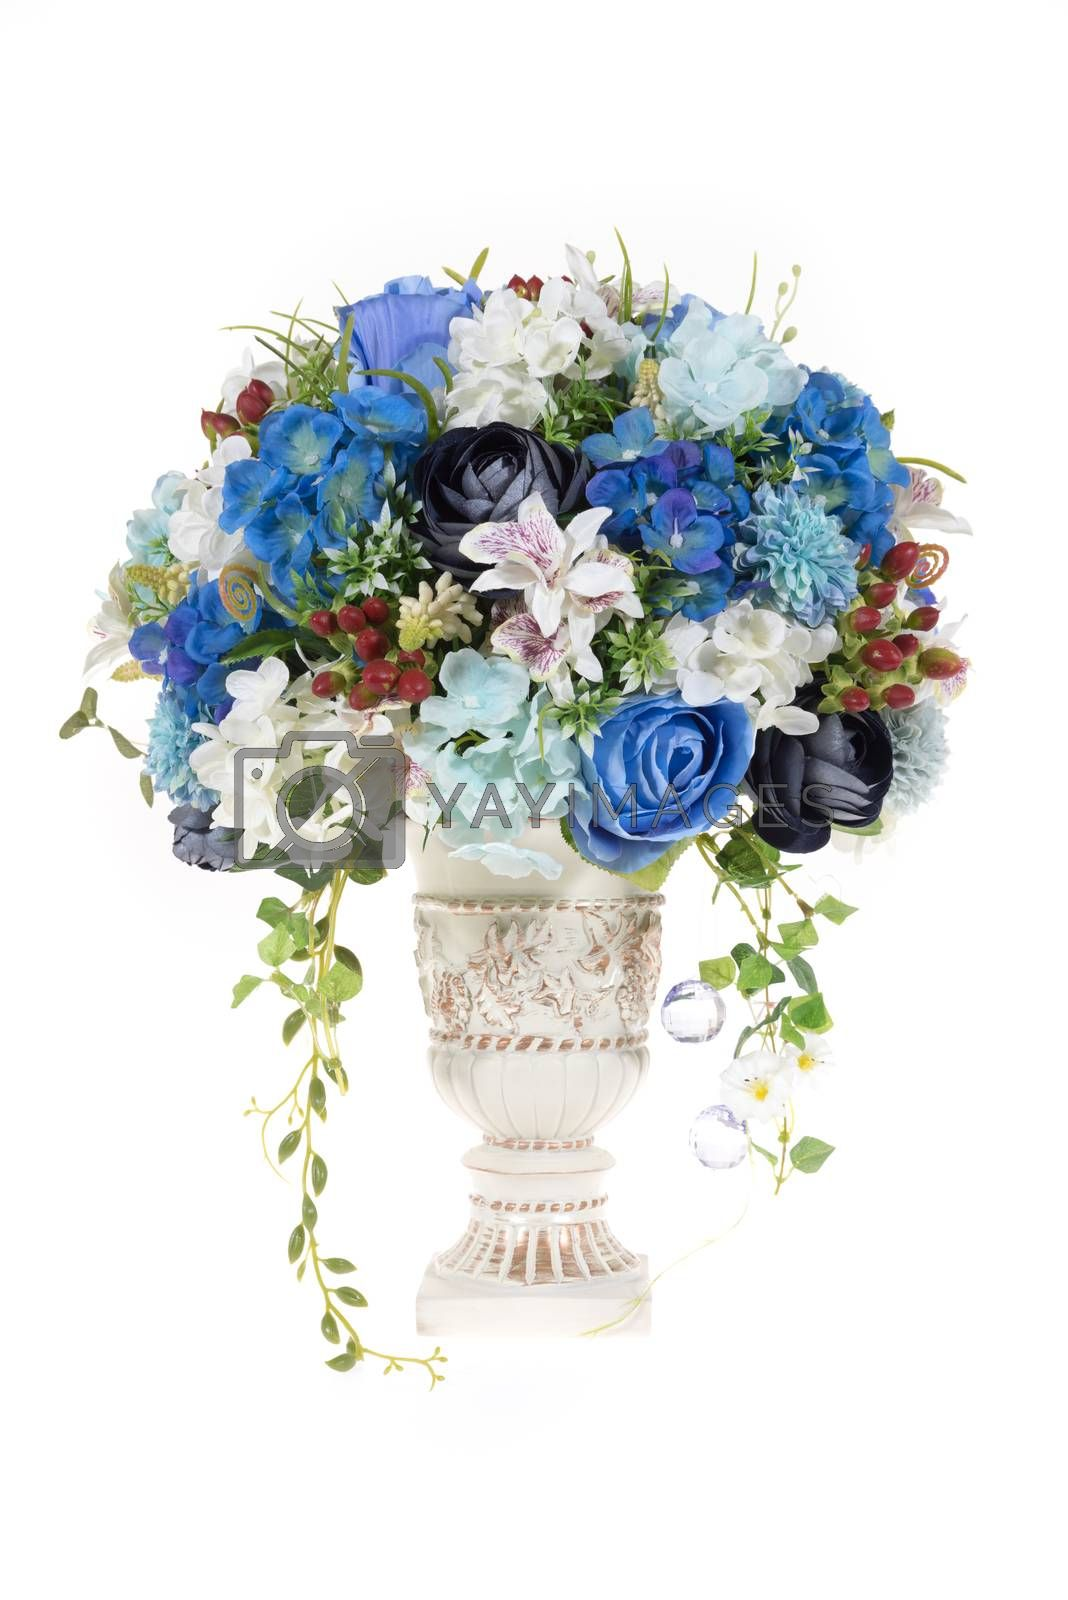 Royalty free image of Decoration artificial plastic flower with vintage design vase by iamway